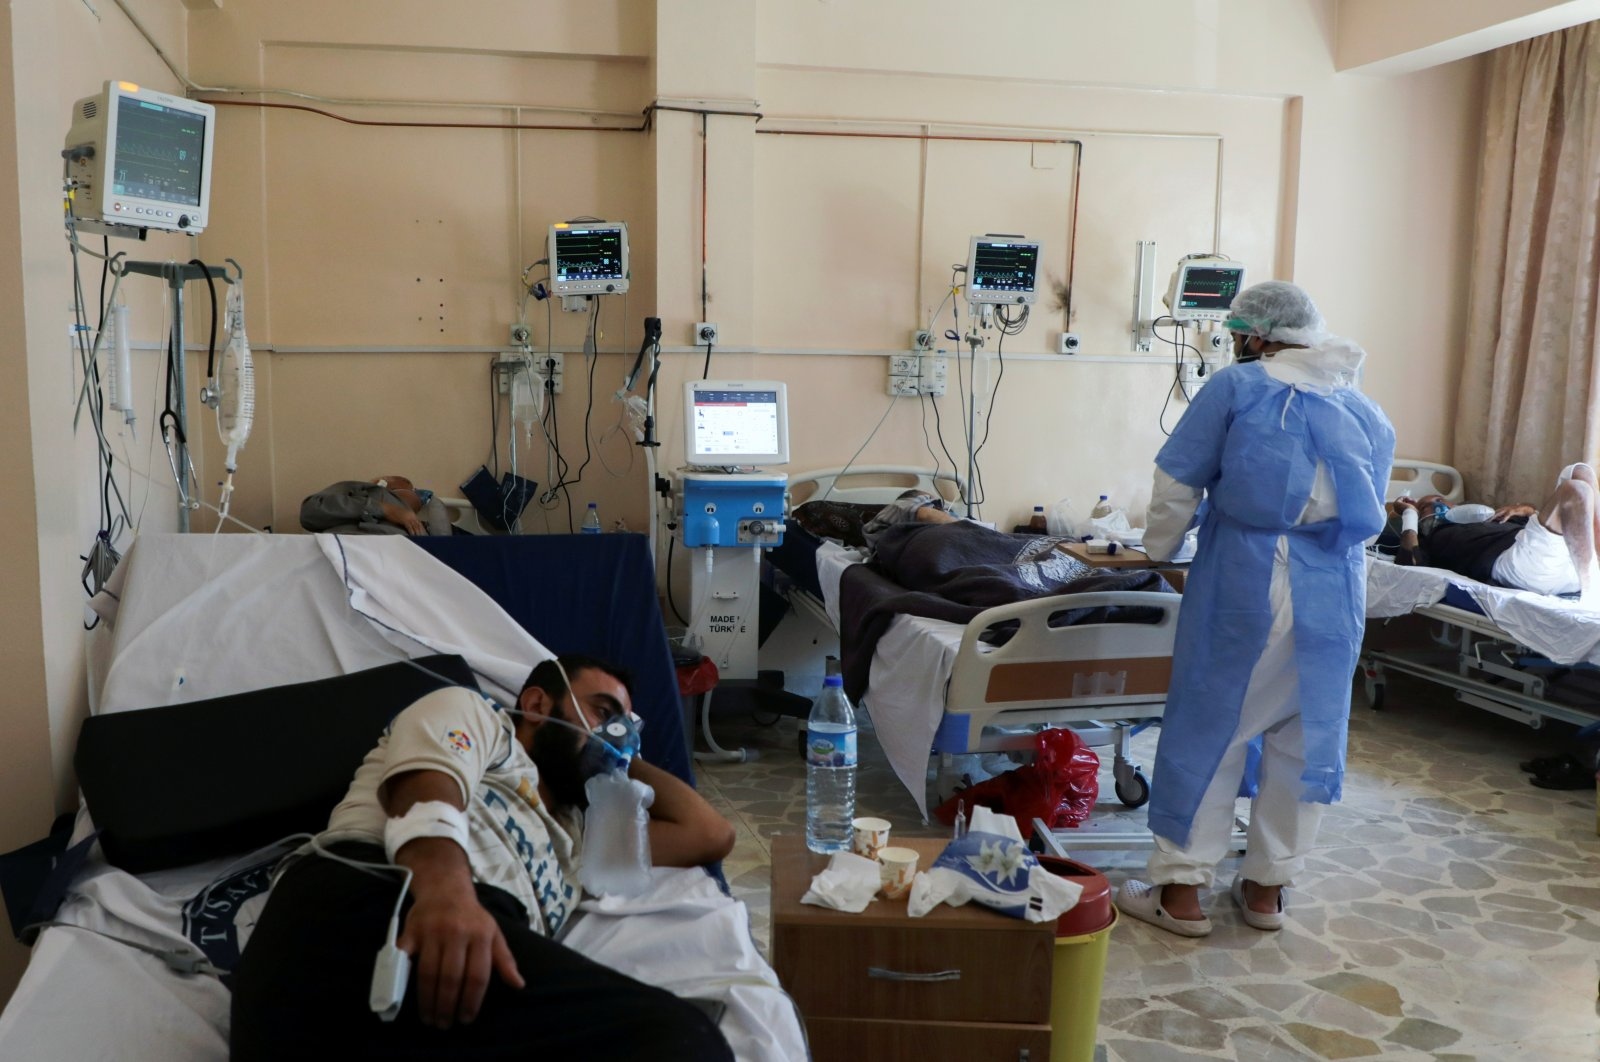 A medical staff member assists patients suffering from the coronavirus disease inside the COVID-19 ward of a hospital in the opposition-held Idlib, Syria Sept. 26, 2021. (Reuters Photo)